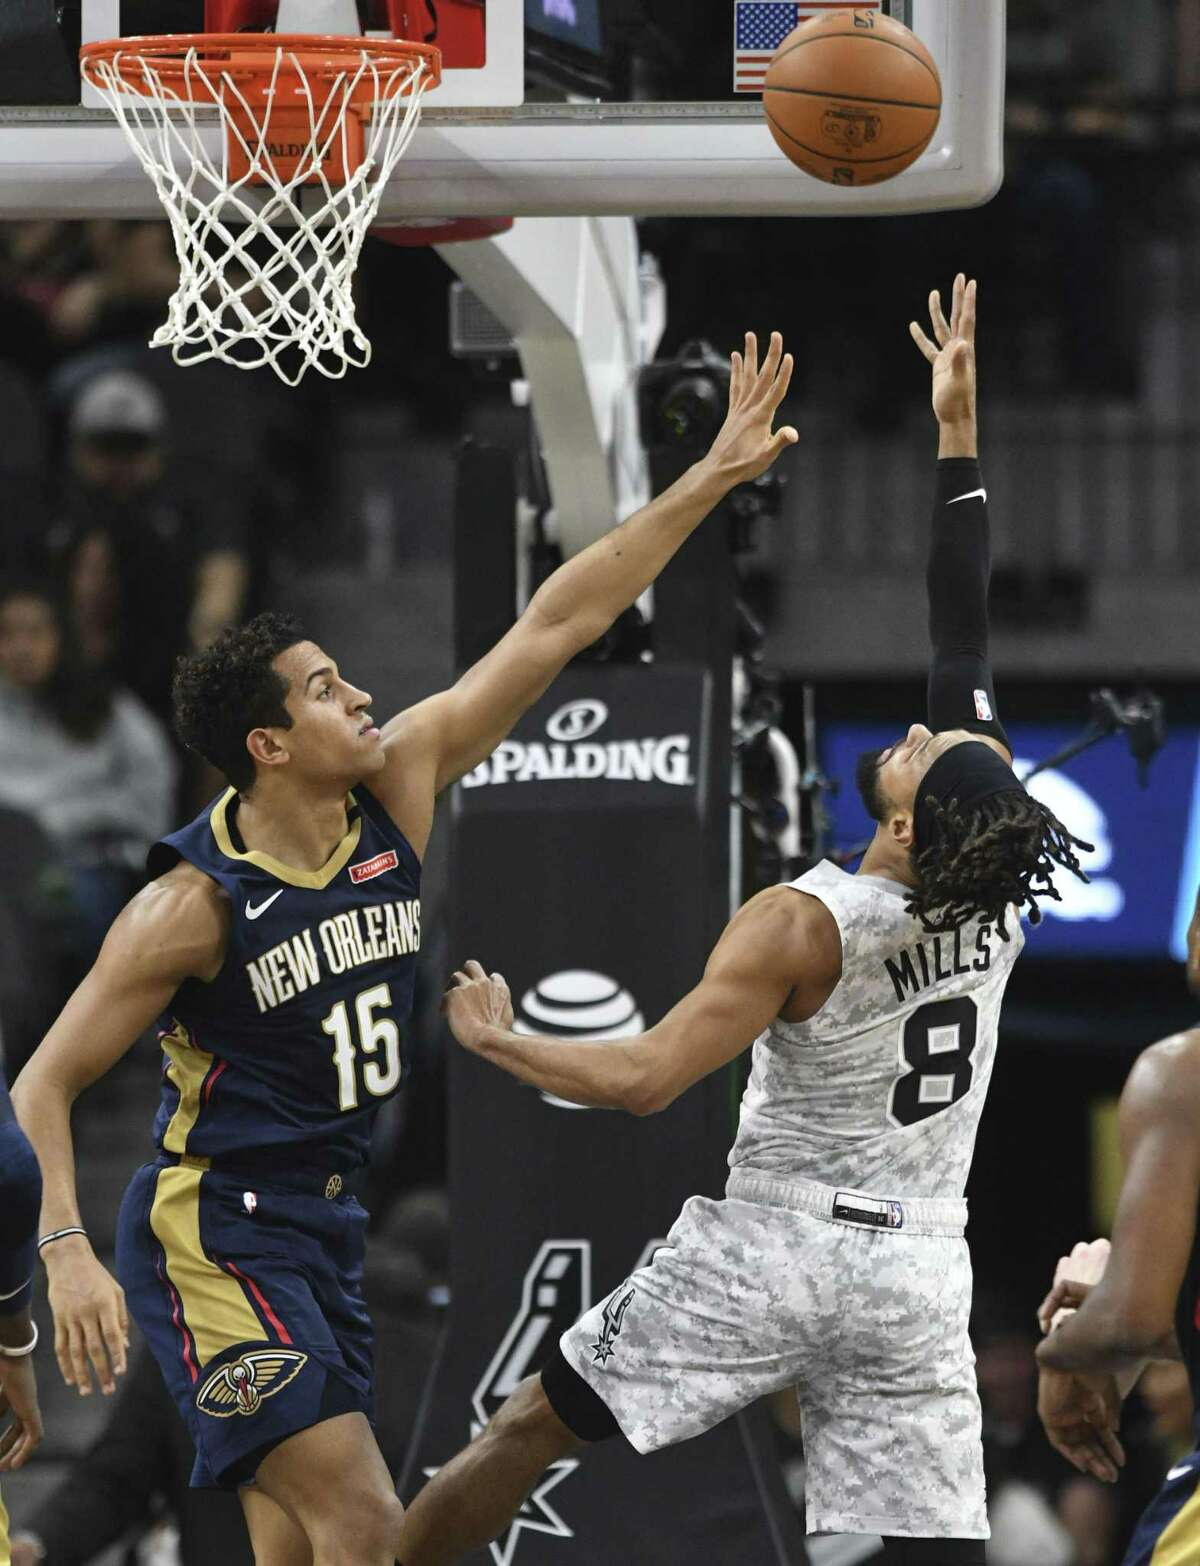 Patty Mills (8) of the San Antonio Spurs shoots and scores over Frank Jackson of the New Orleans Pelicans during NBA action in the AT&T Center on Saturday, Feb. 2, 2019.